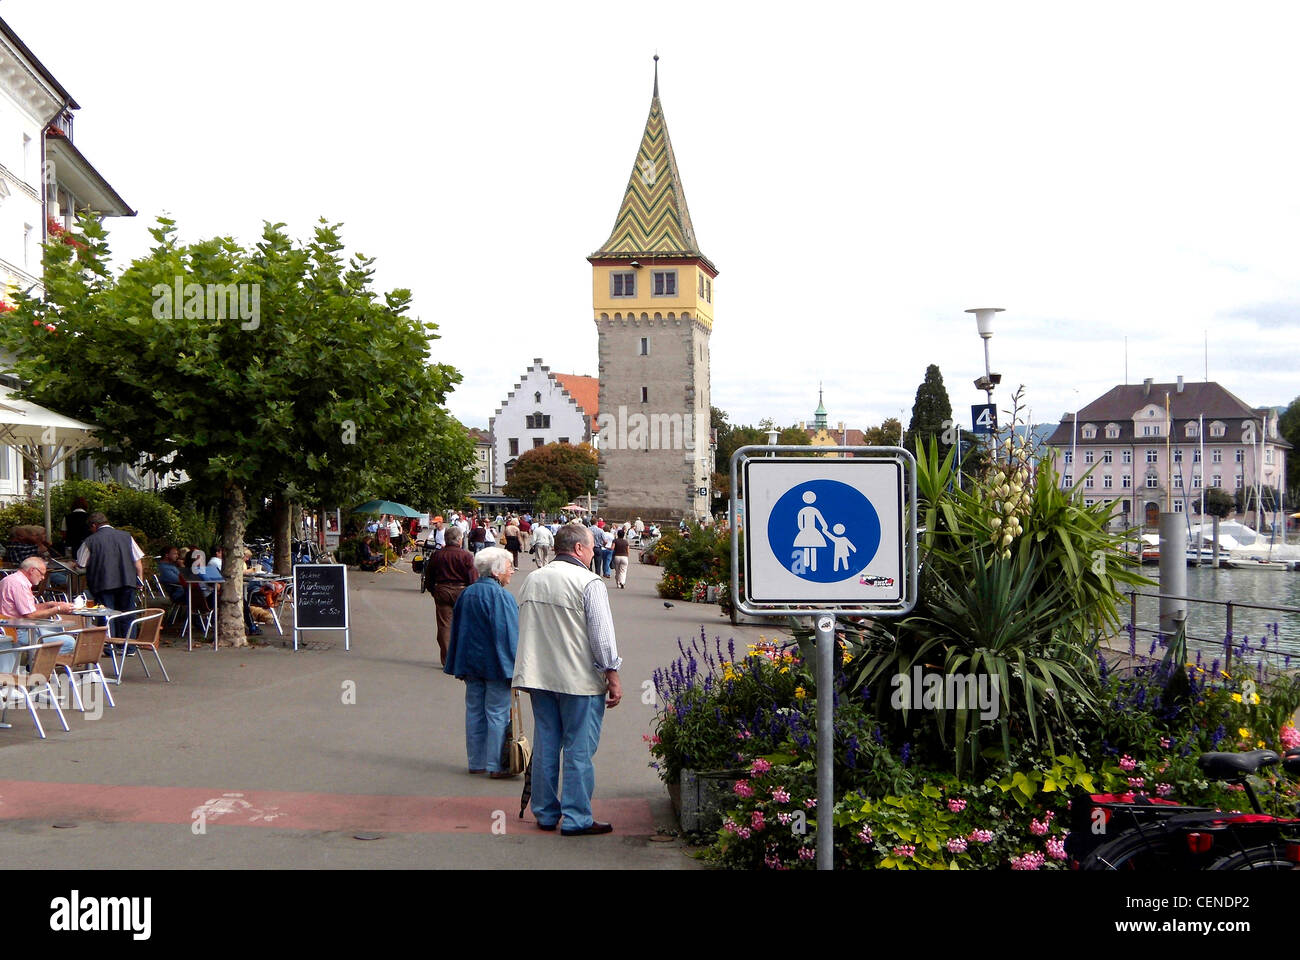 Port of Lindau in Lake Constance with Mang Tower. - Stock Image